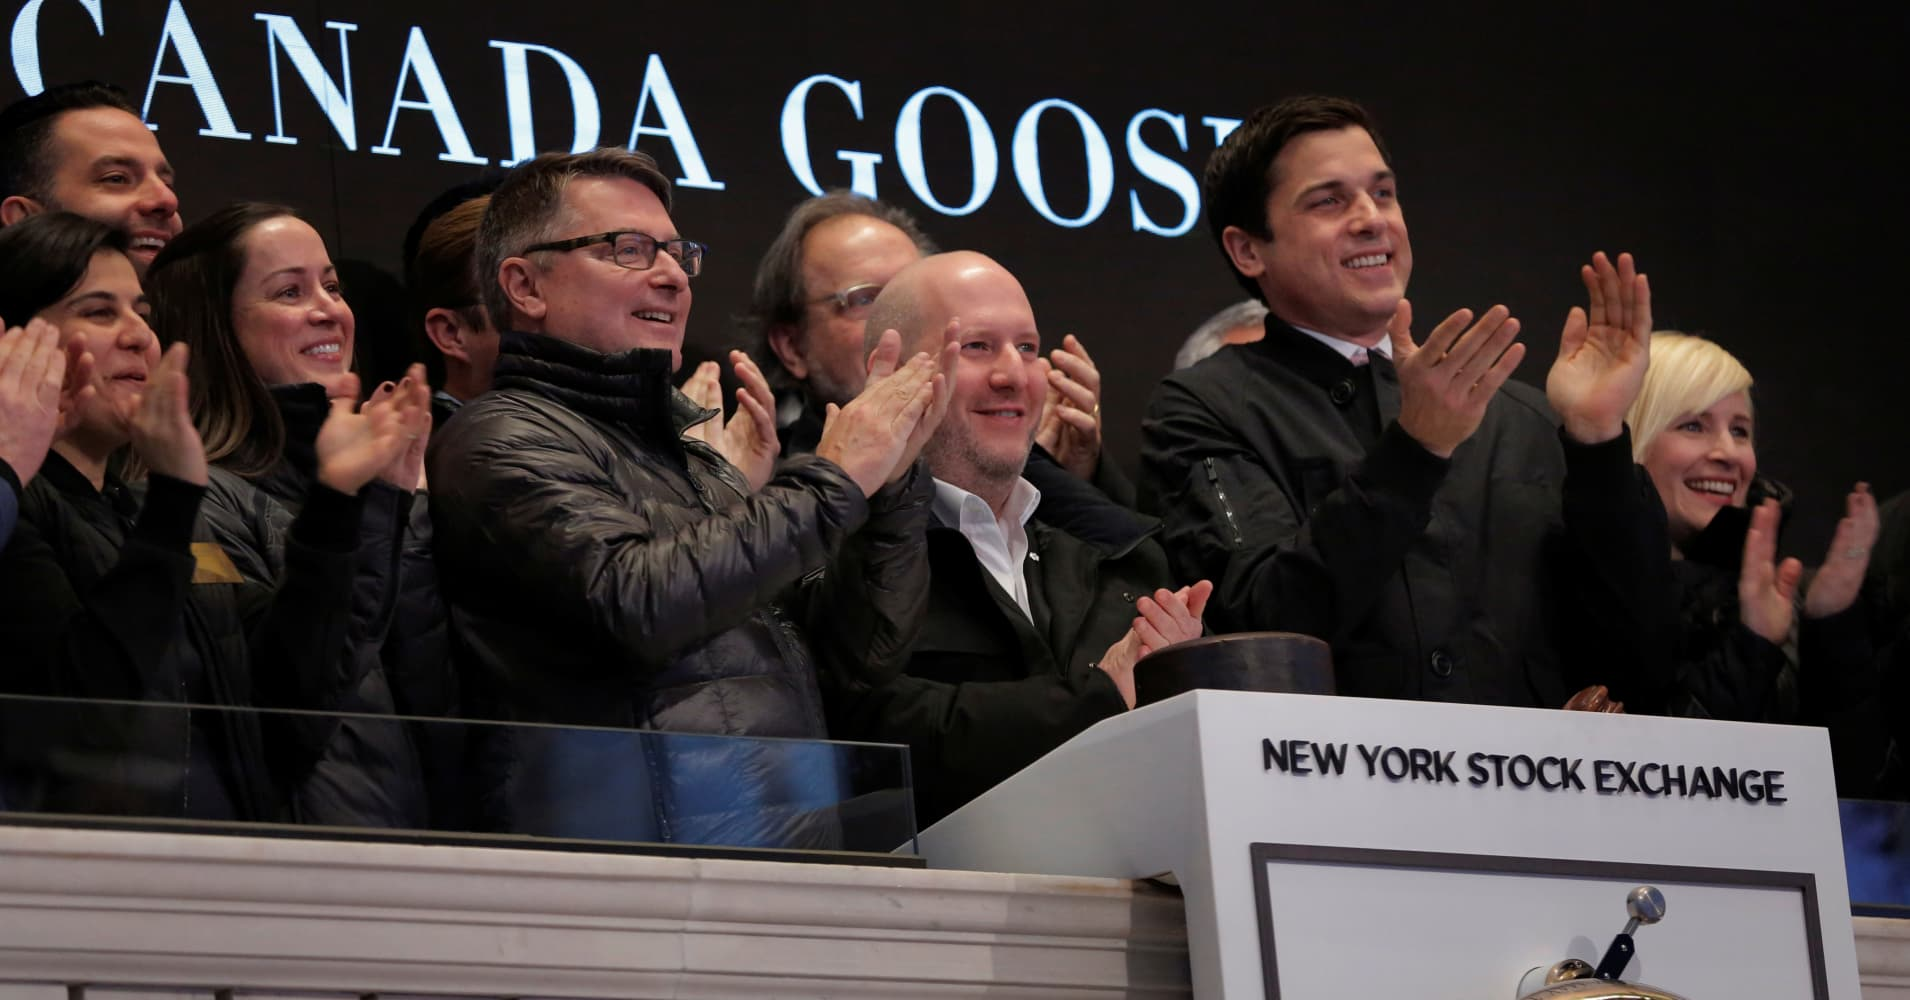 Canada goose closes its first day trading up more than 25 ceo of canada goose dani reiss applauds the companys ipo above the floor of the new biocorpaavc